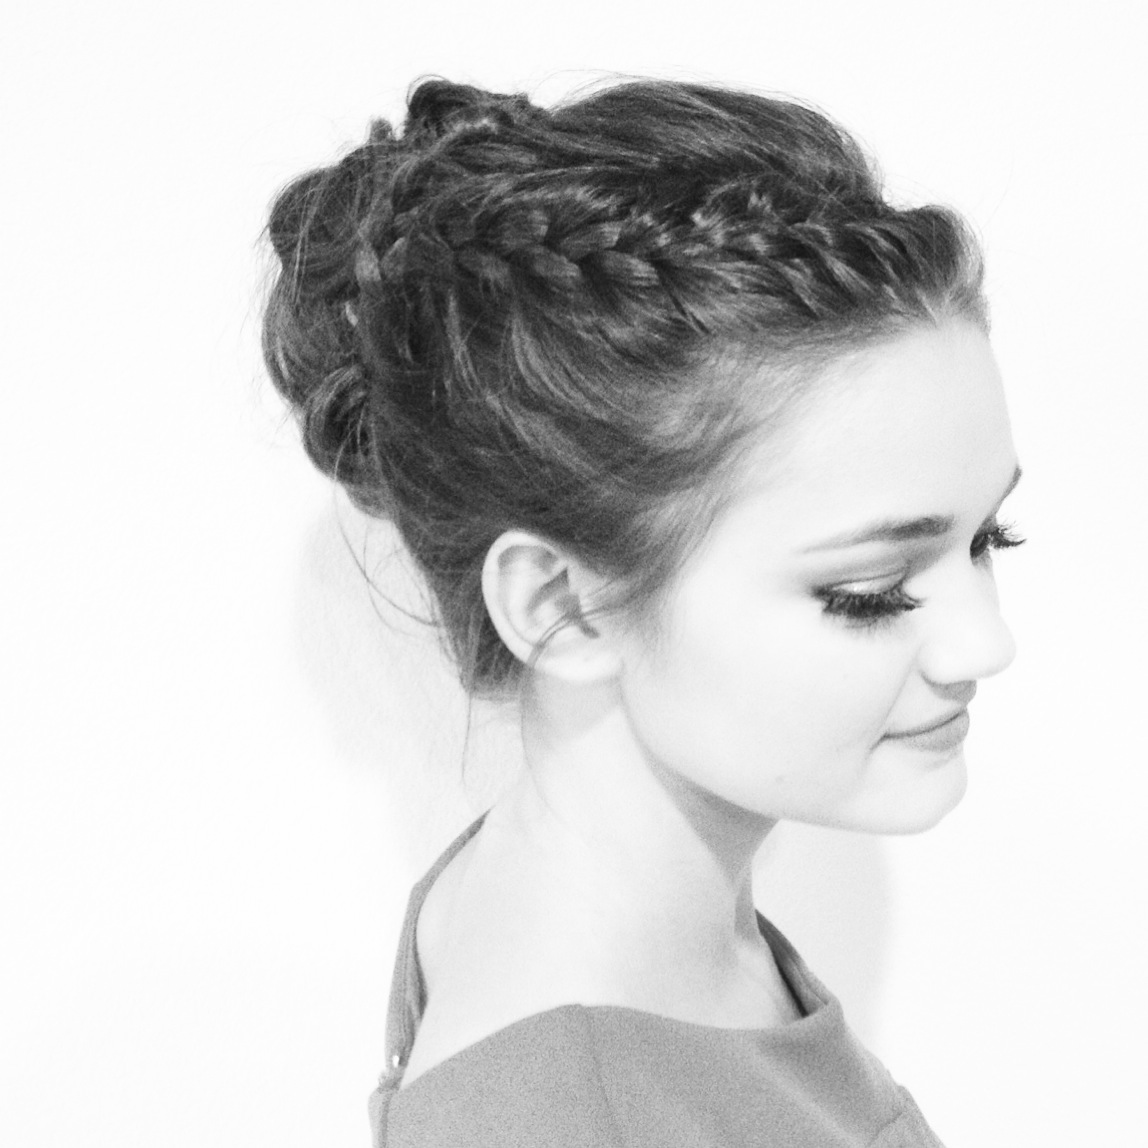 Beautiful braided Up Do- perfect choice for a Summer Event.